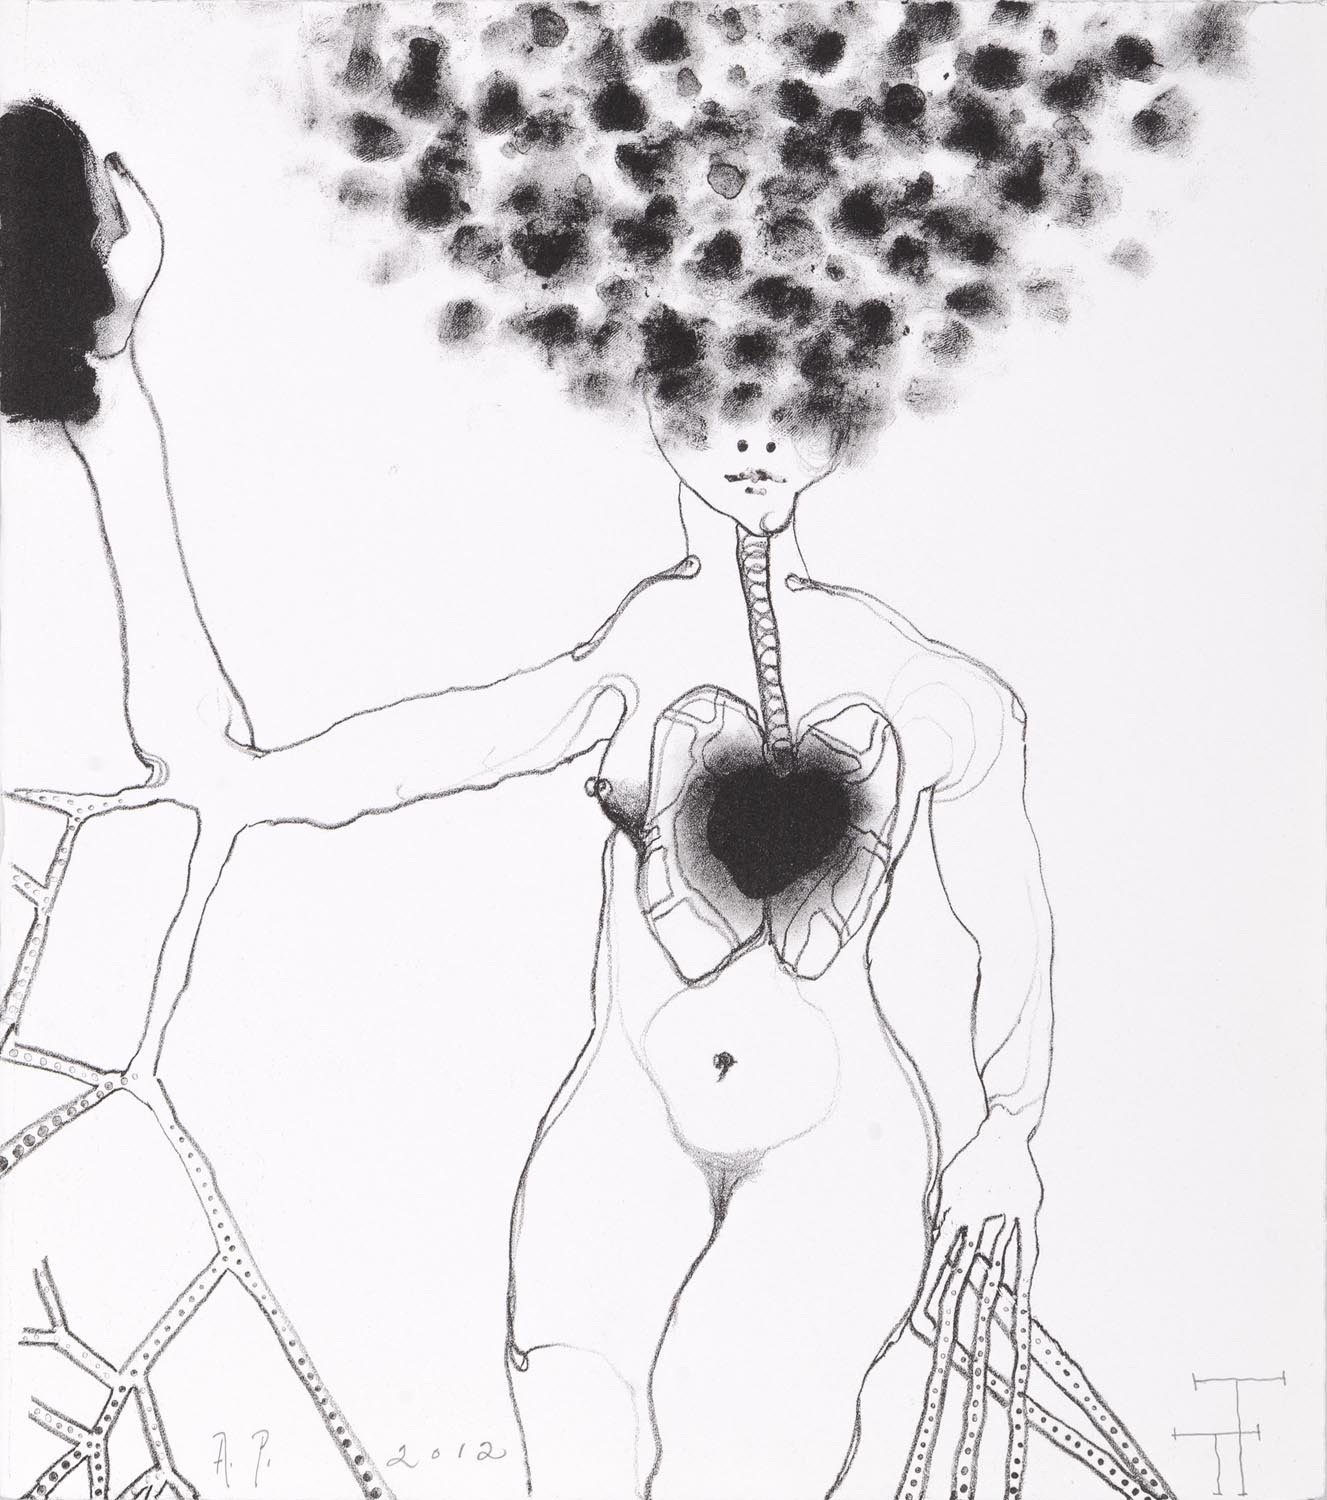 'Persephone' series, lithograph, 30 X 27 cm, 2012